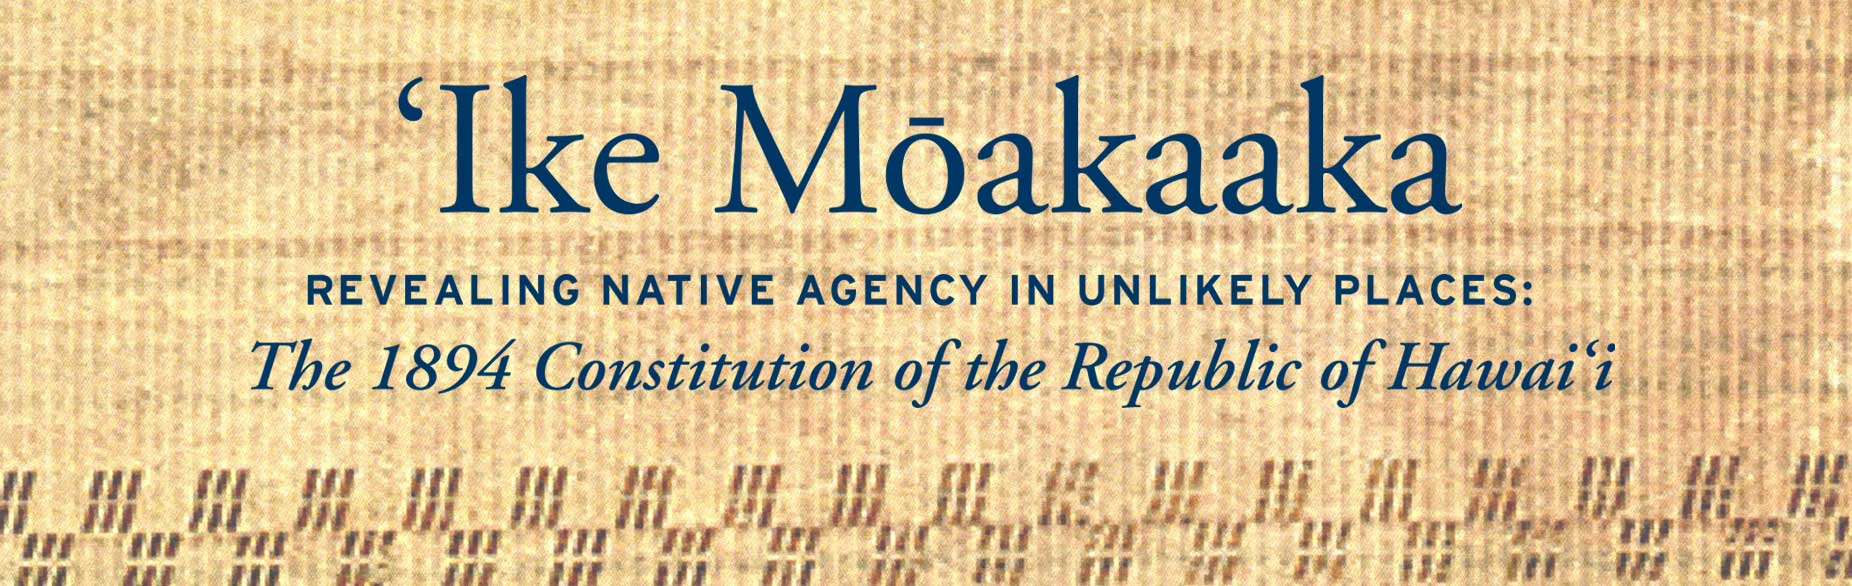 ʻIke Mōakaaka Revealing Native Agency in Unlikely Places: The 1894 Constitution of the Republic of Hawaiʻi